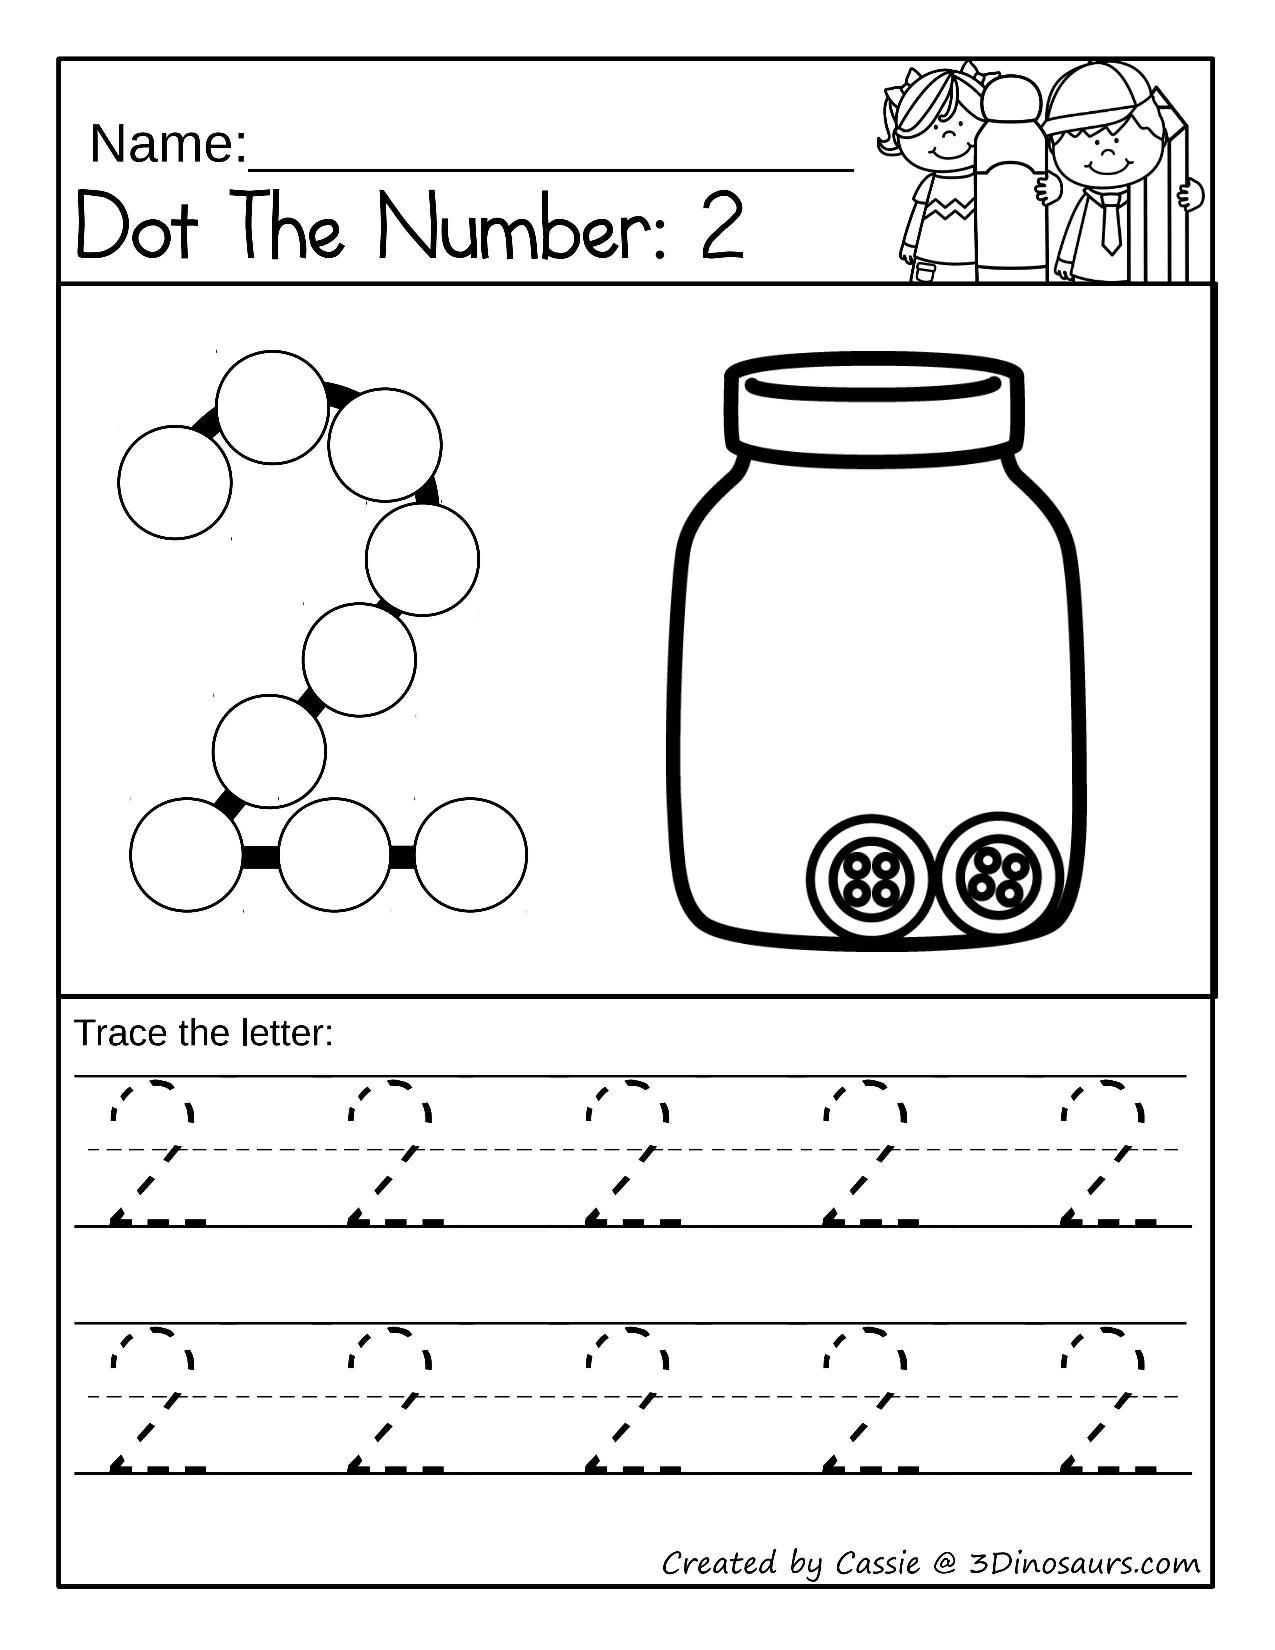 Dot The Number 2 In